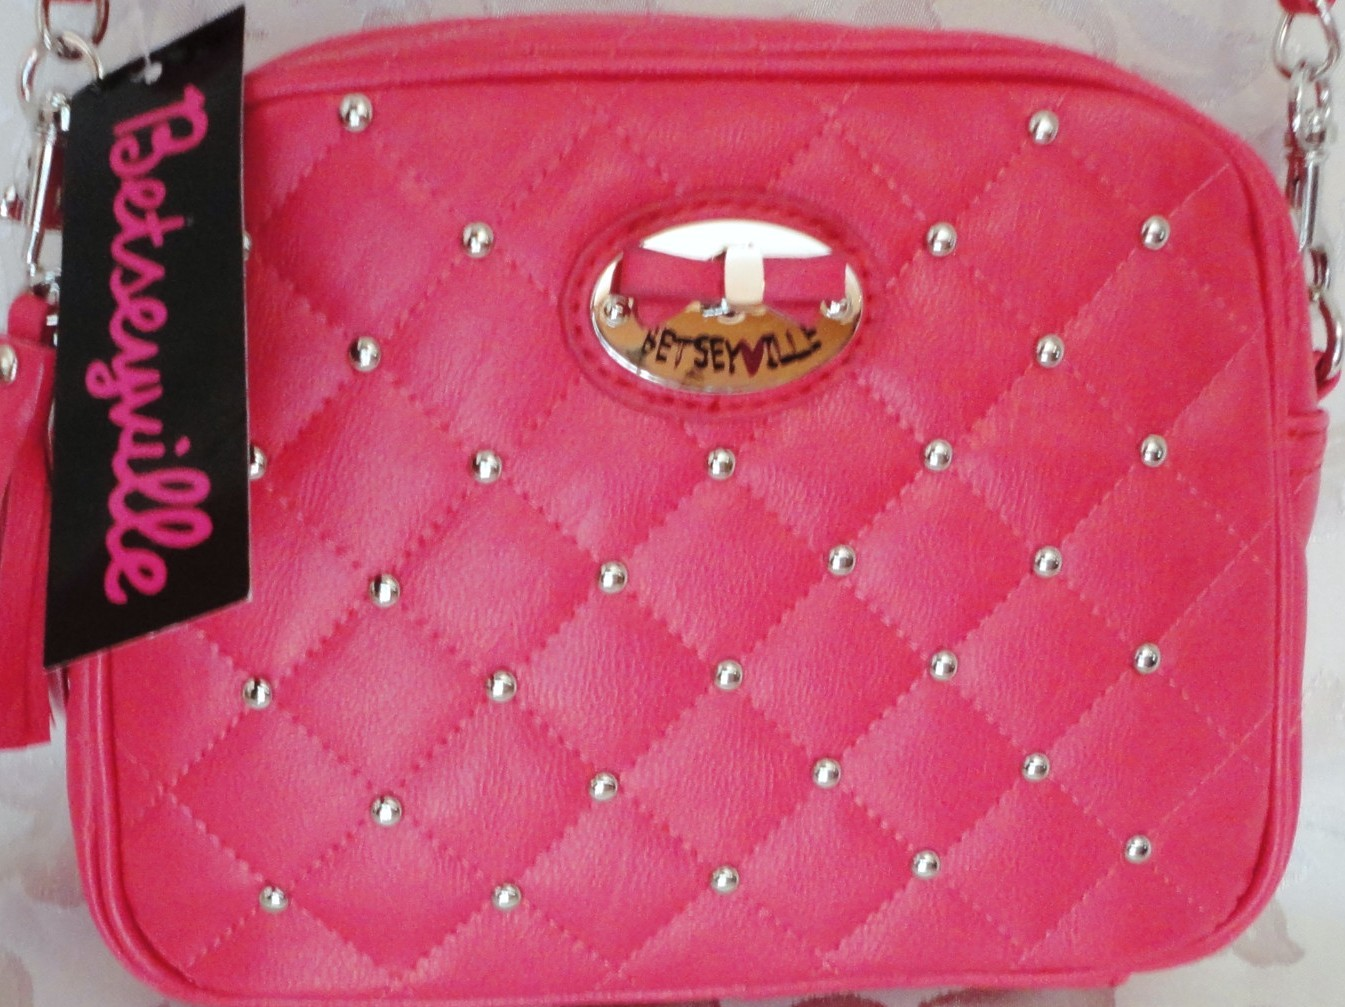 Betseyville® Quilted Studded Crossbody Bag NWT BV028